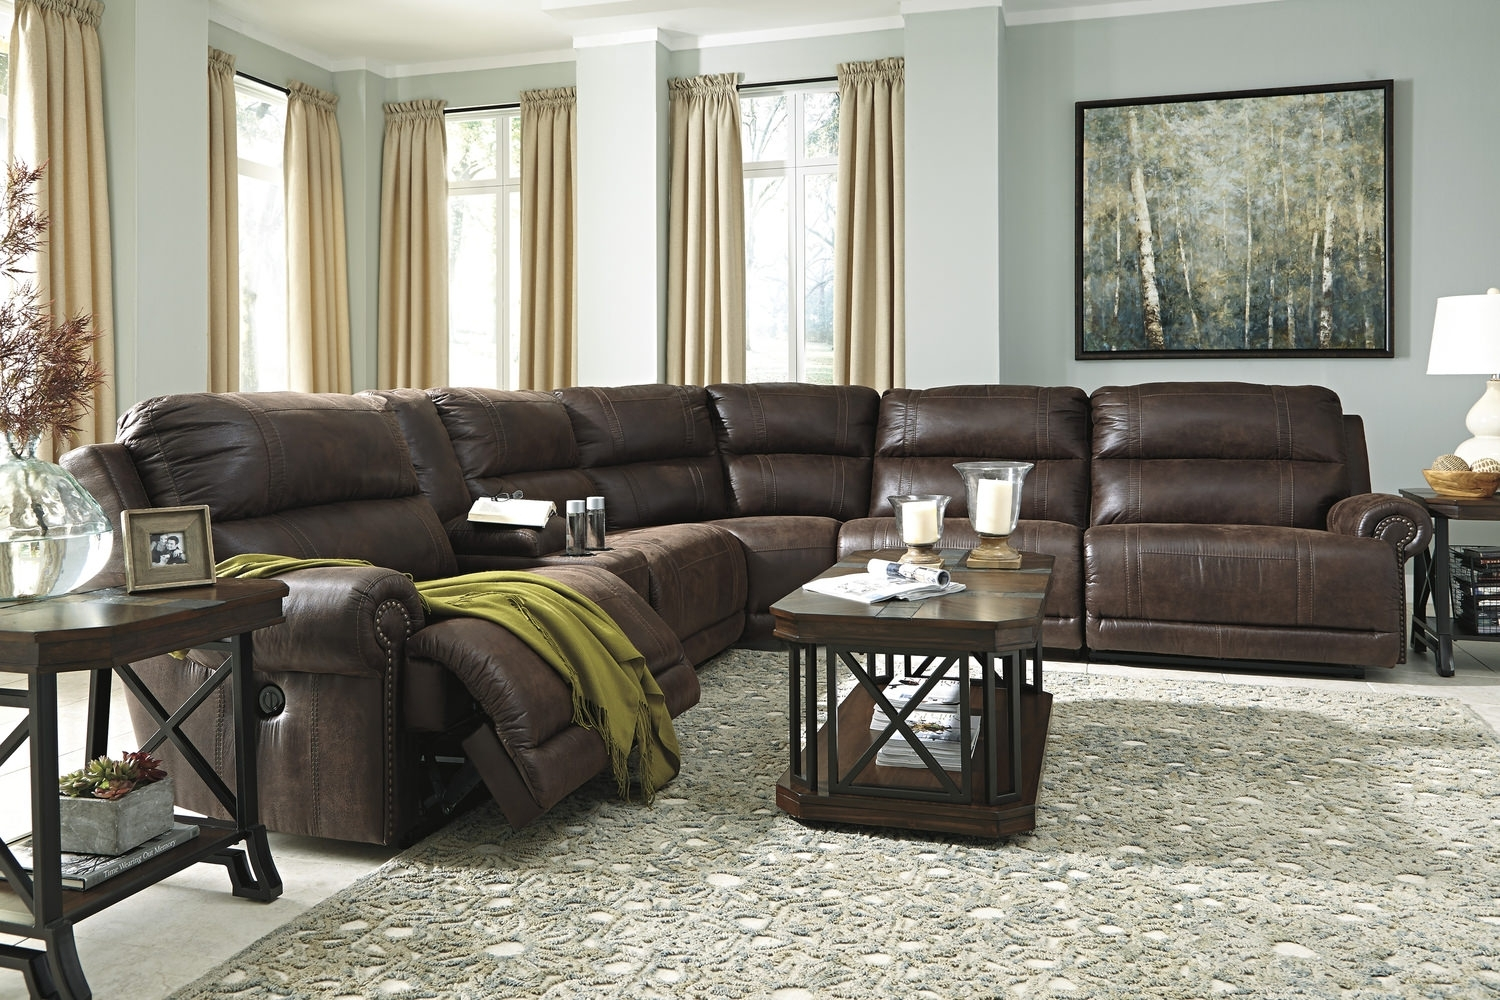 Placer 6 Piece Power Reclining Modular Sectional | Dock86 Throughout Blaine 3 Piece Sectionals (View 19 of 25)